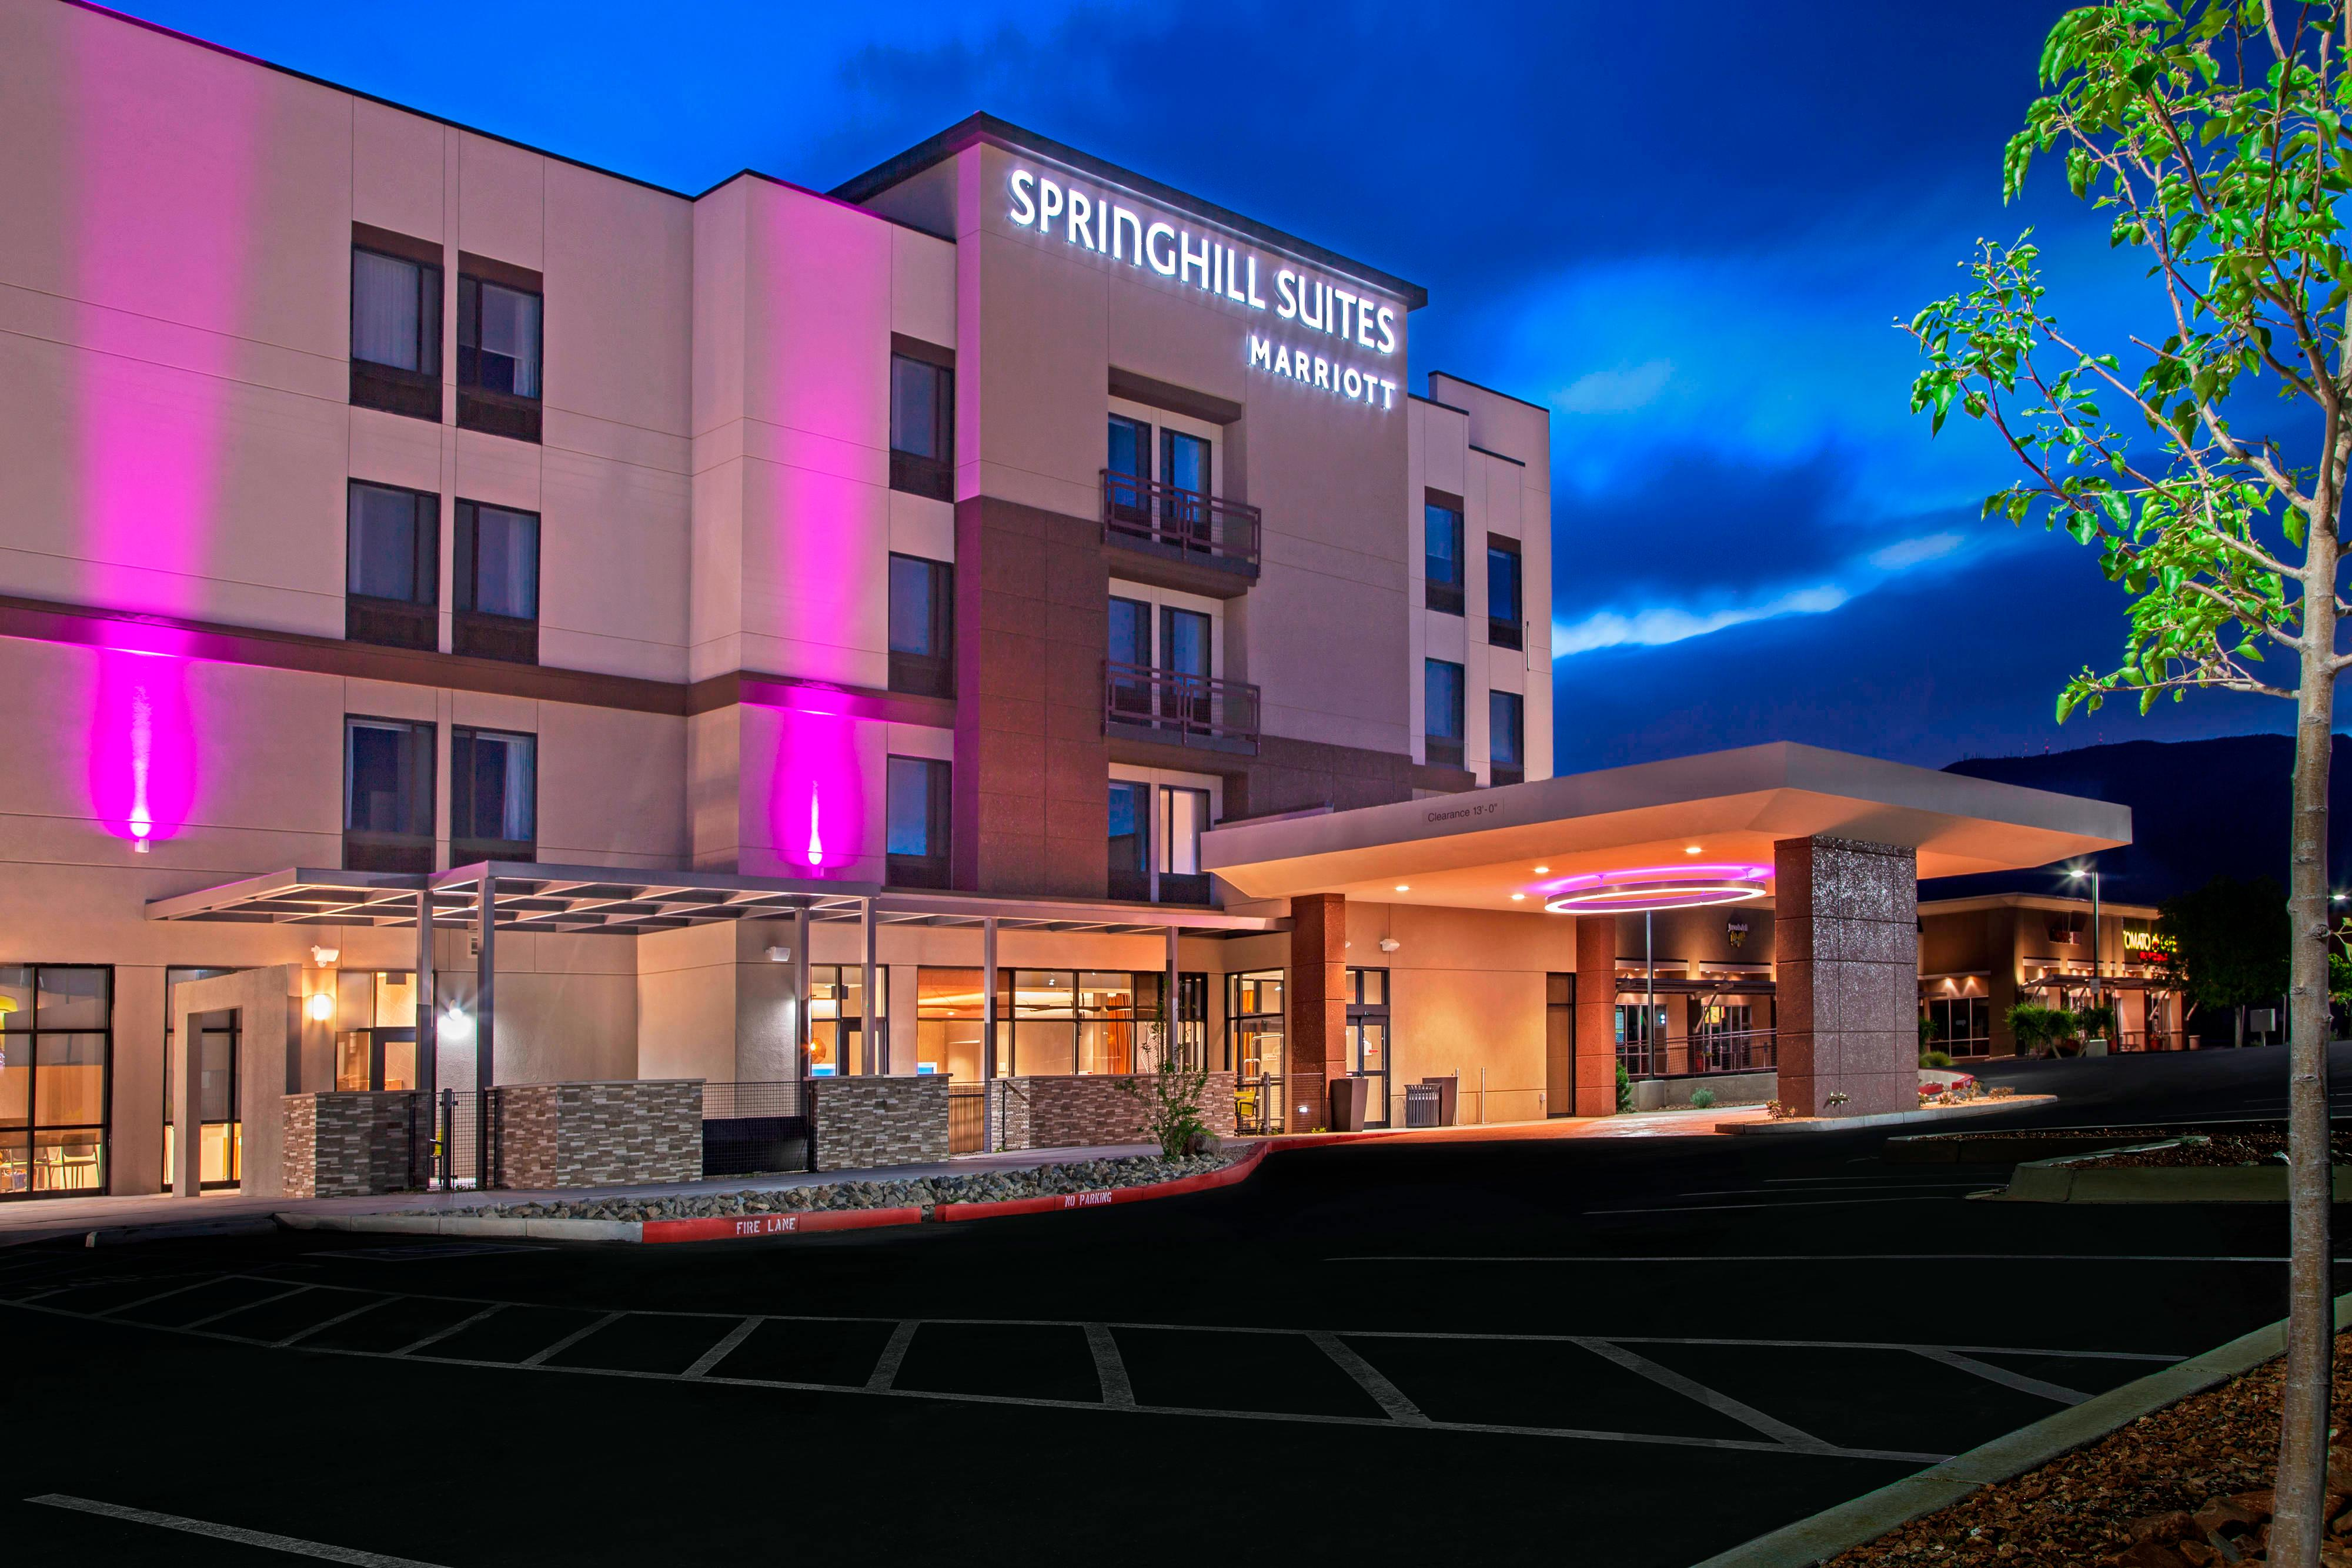 SPRINGHILL STES JOURN MARRIOTT